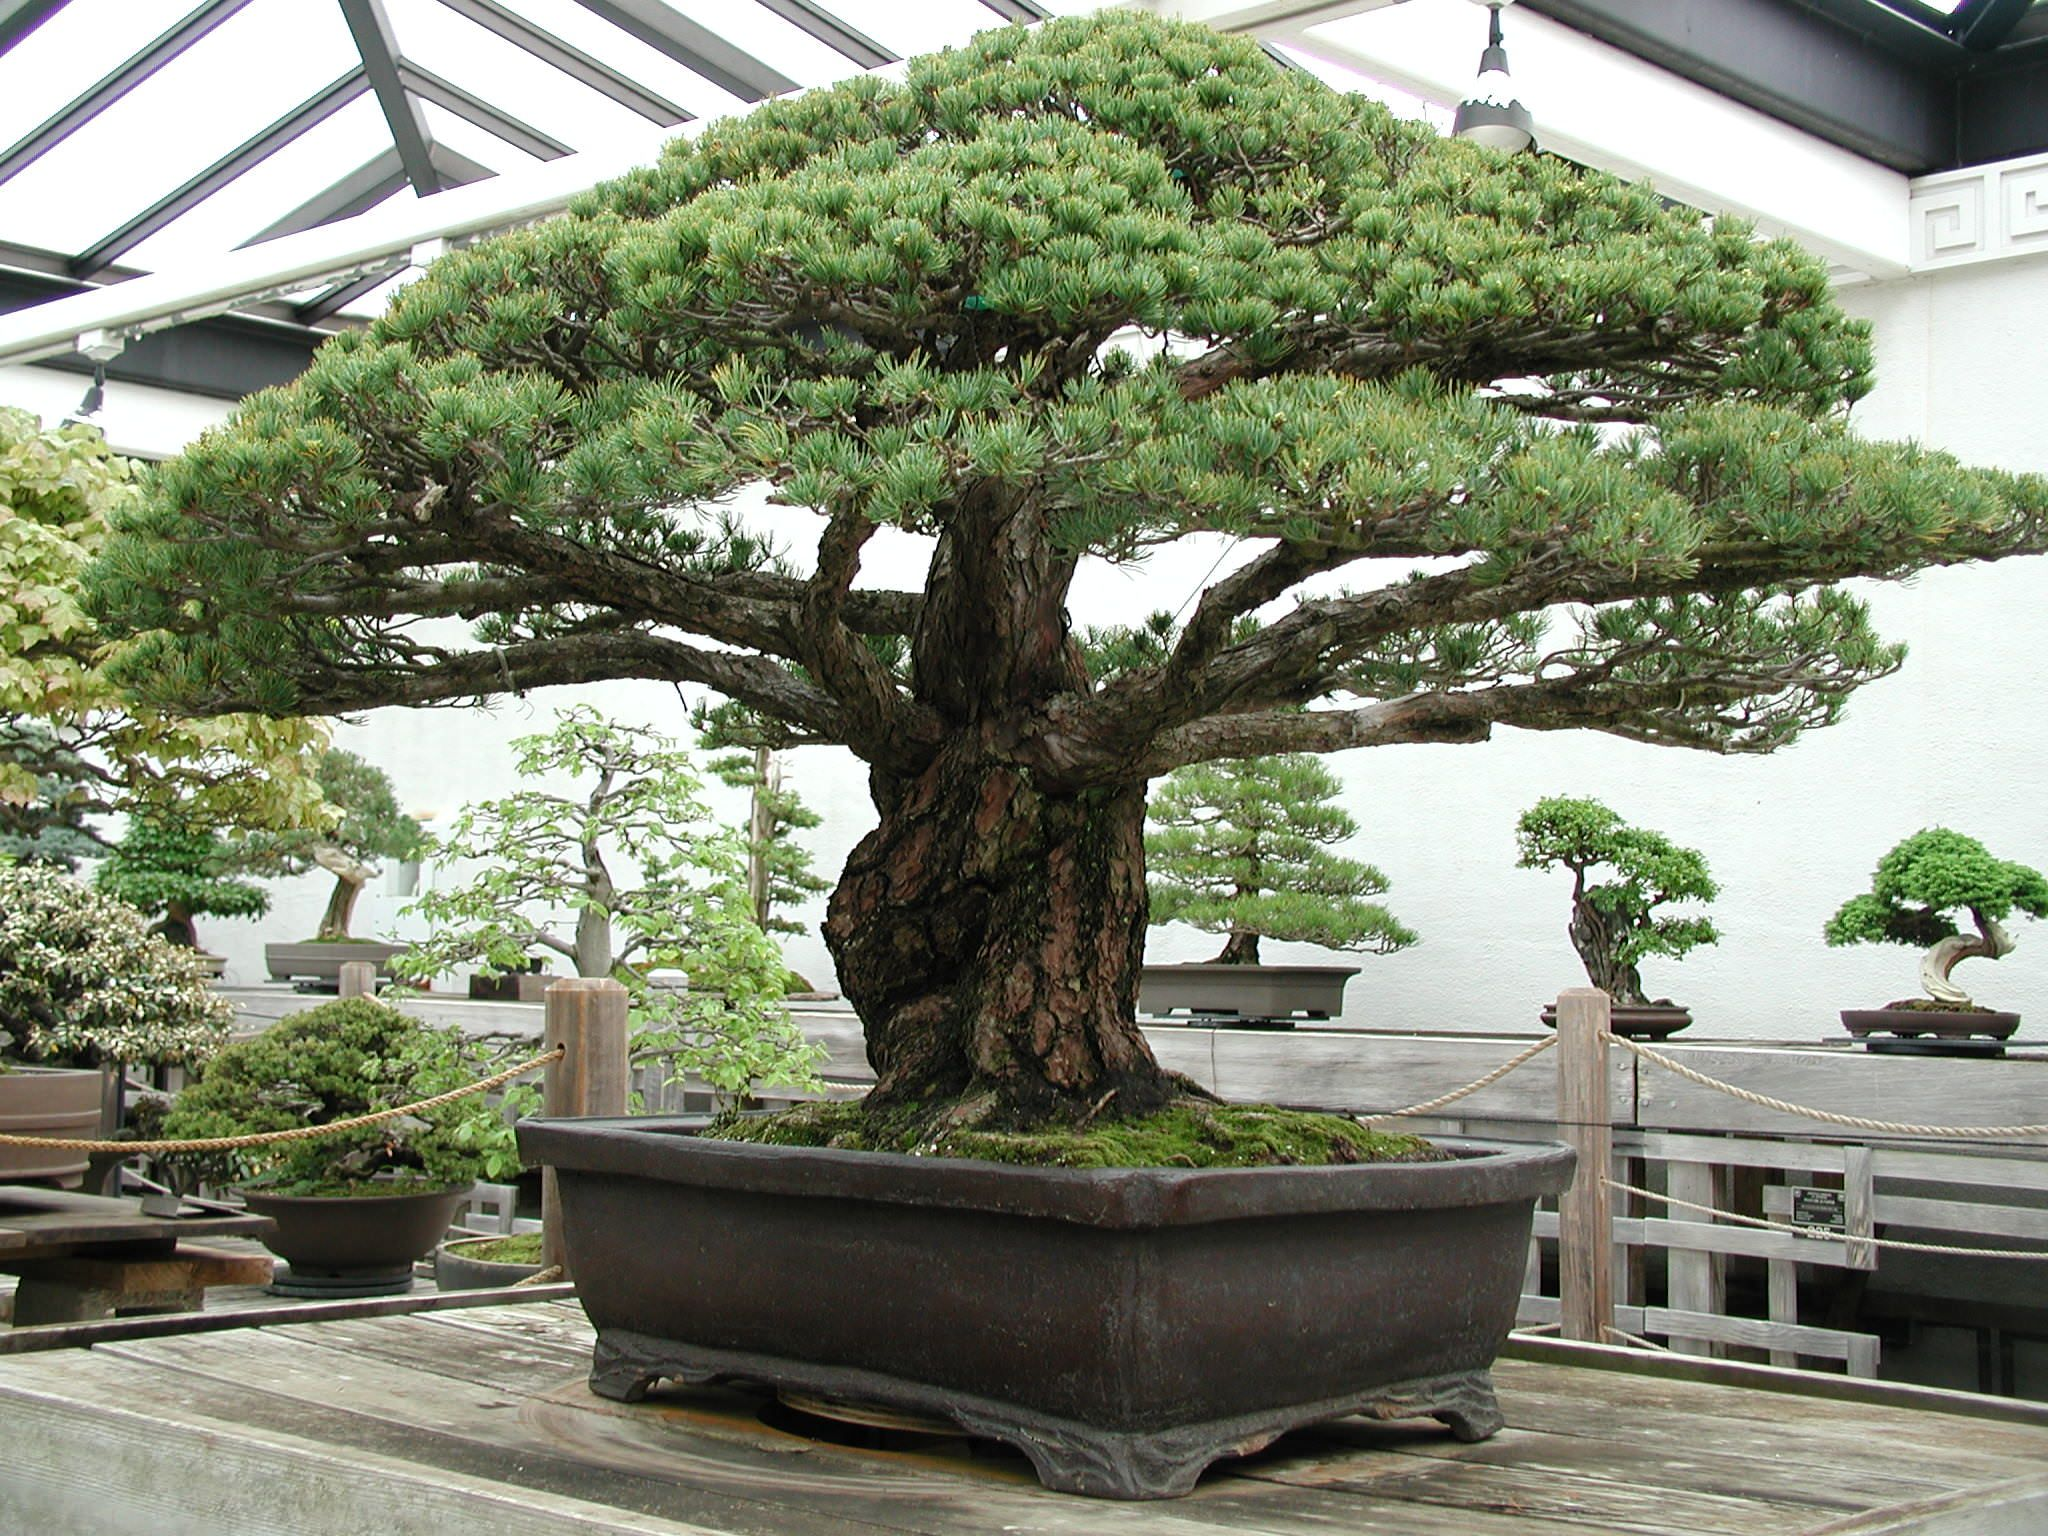 Nearly 400 Year Old Bonsai Tree that survived the Hiroshima Blast